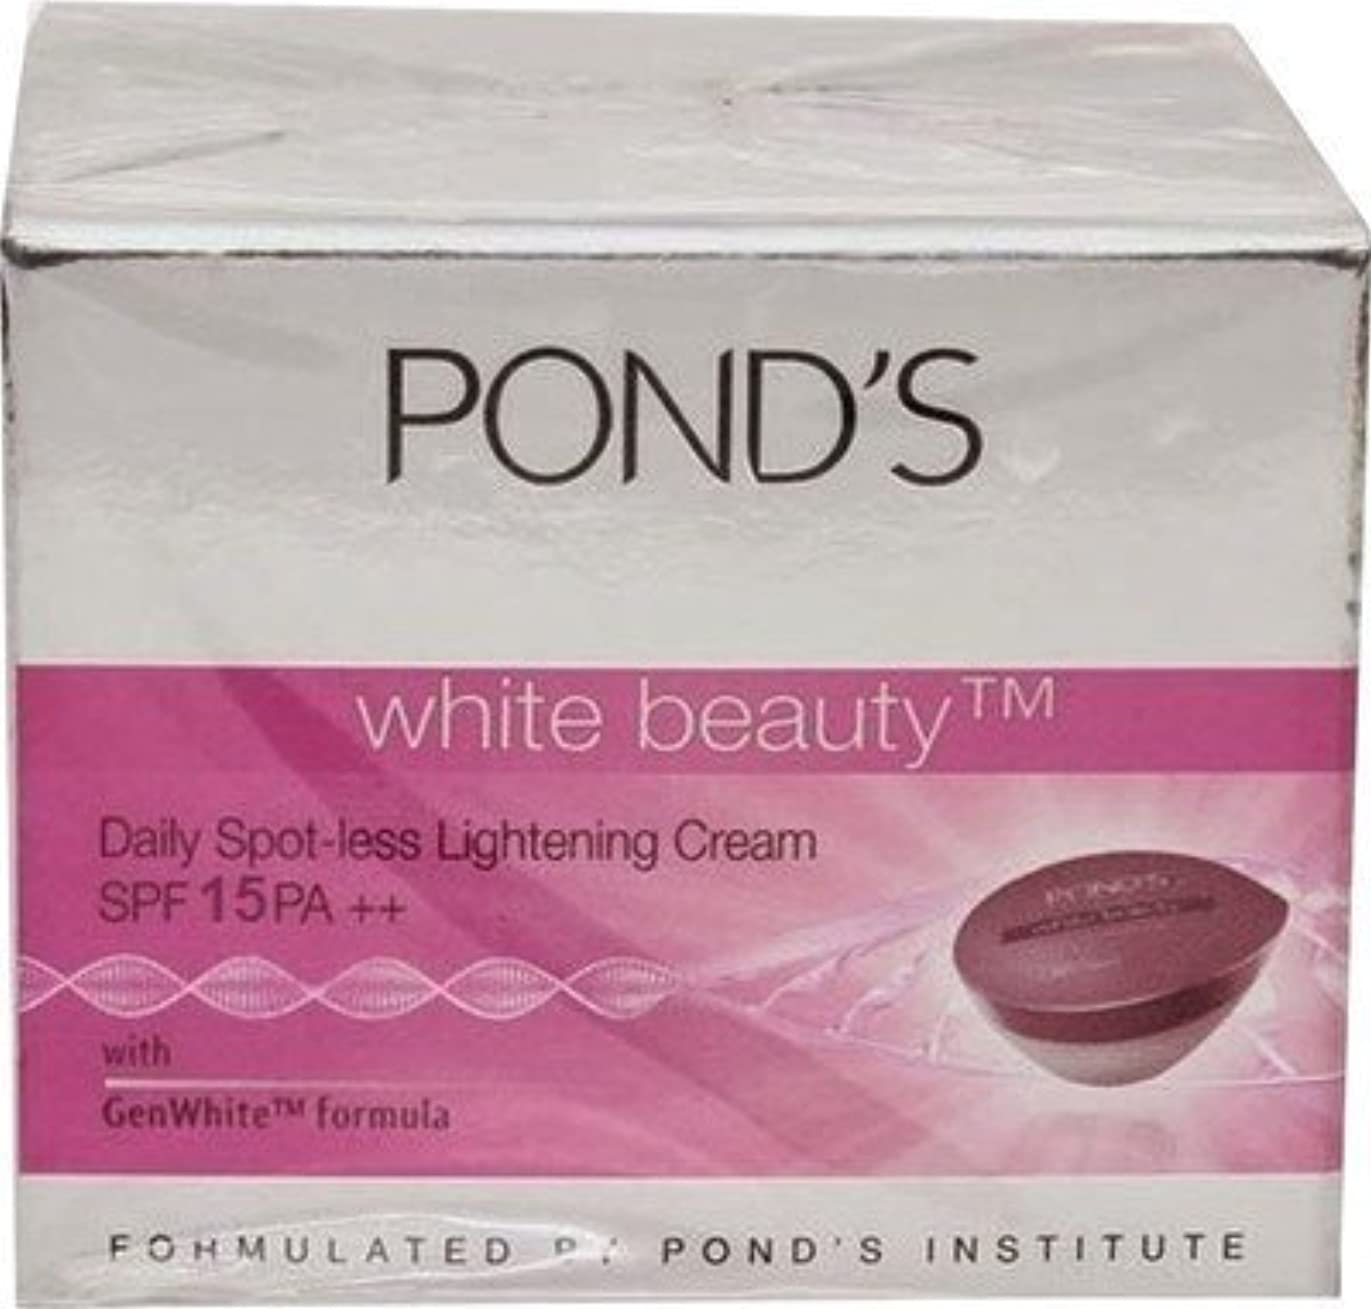 ディプロマ少数公平2 Pack of POND'S White Beauty Lightening Cream 35 gms each (Total 70 gms) (並行インポート)